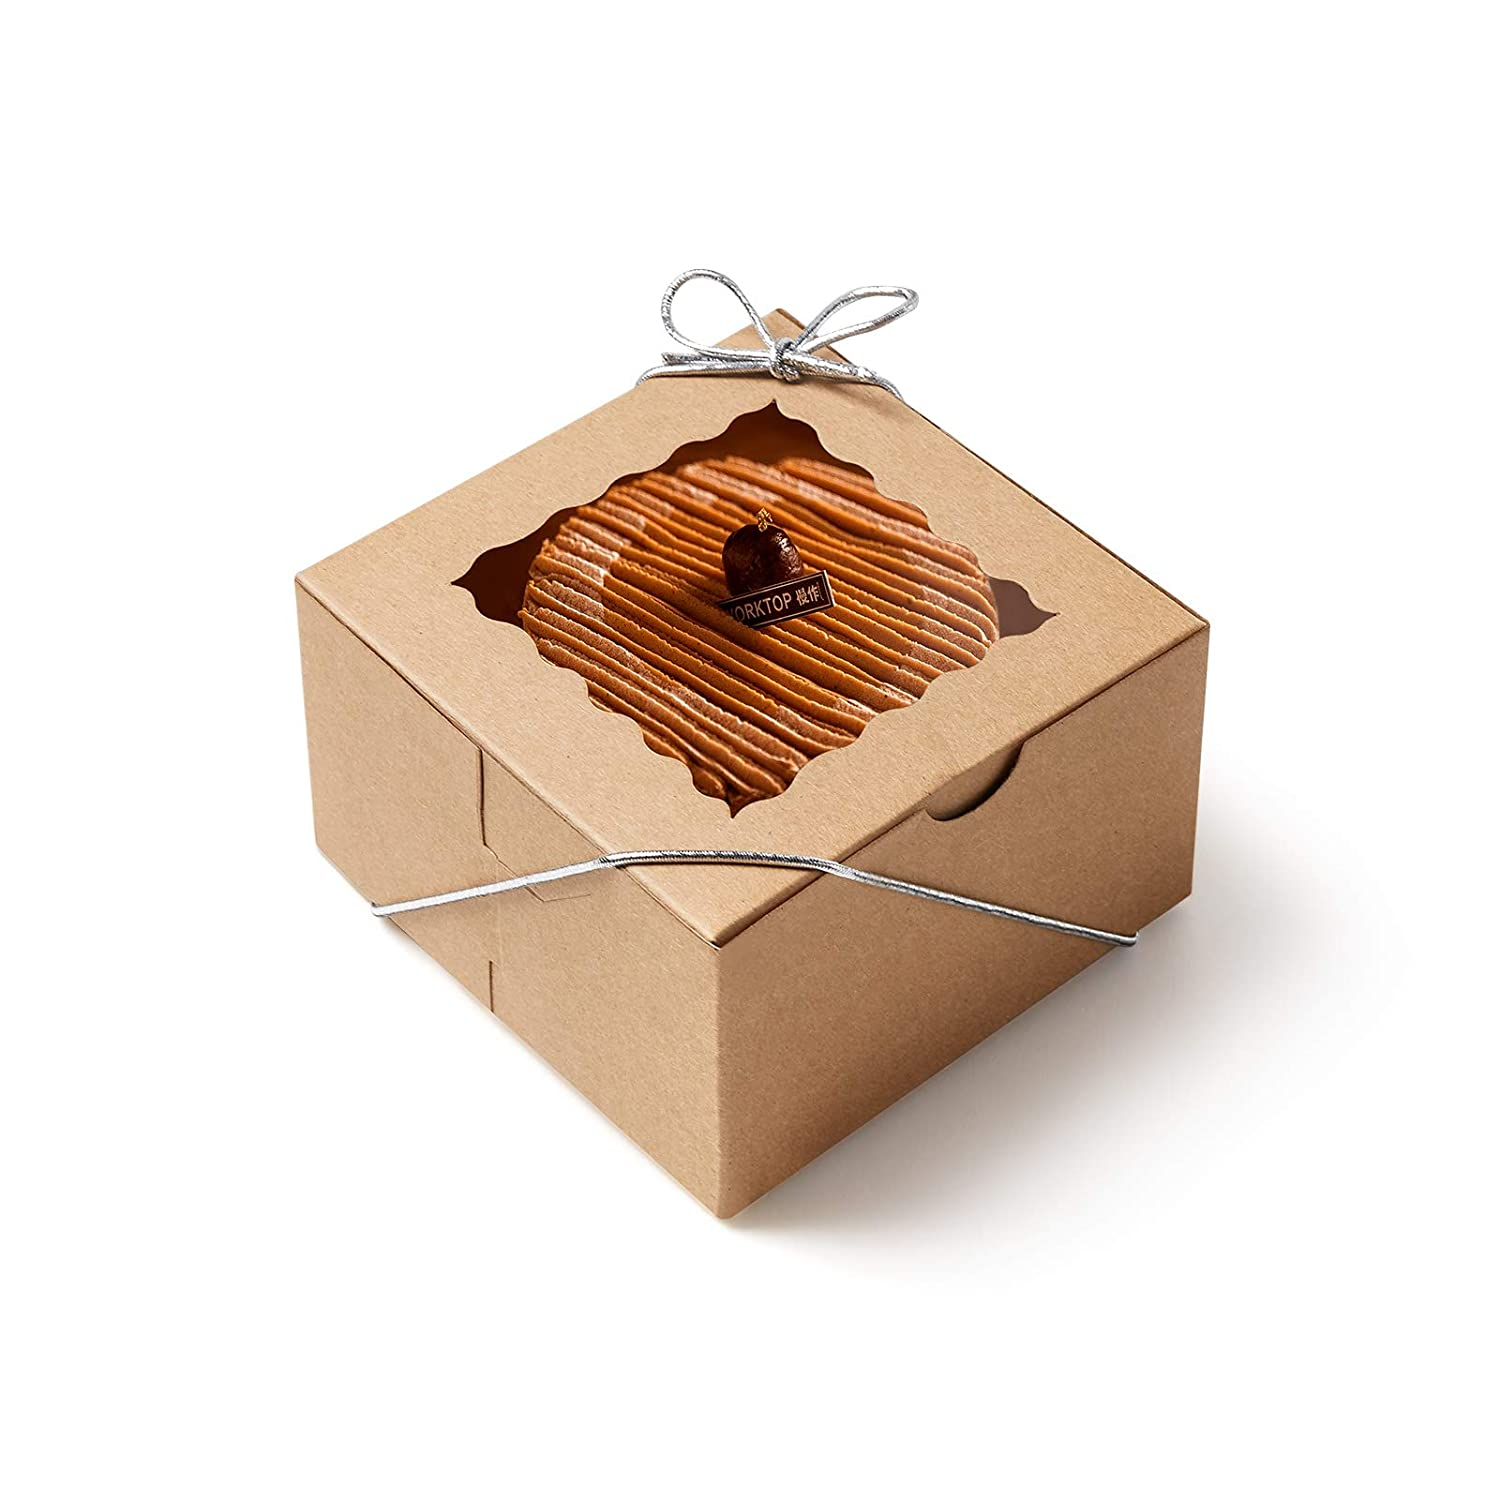 50 PCS Bakery Boxes with Window 4x4x2.5 inches Cookie Boxes for Packaging Mini Cupcake Boxes Cookie Bakery Boxes for Gift Giving Bakery Treat Boxes for Cupcakes, Cookies, Donuts,Pastries(Brown)